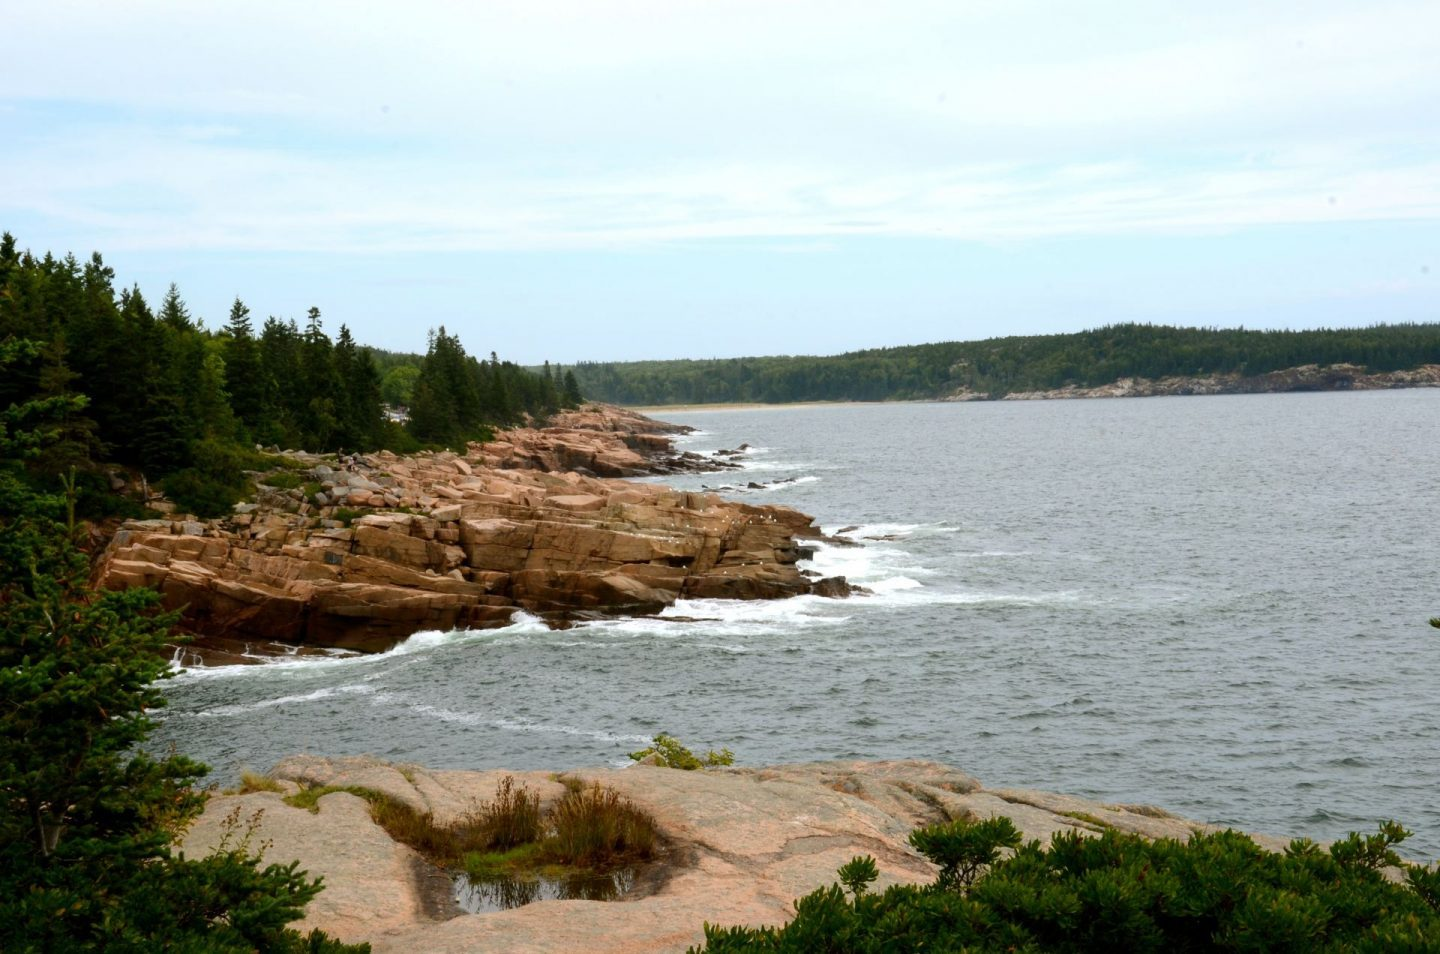 Exploring the rugged coastline on Ocean Path at Acadia National Park